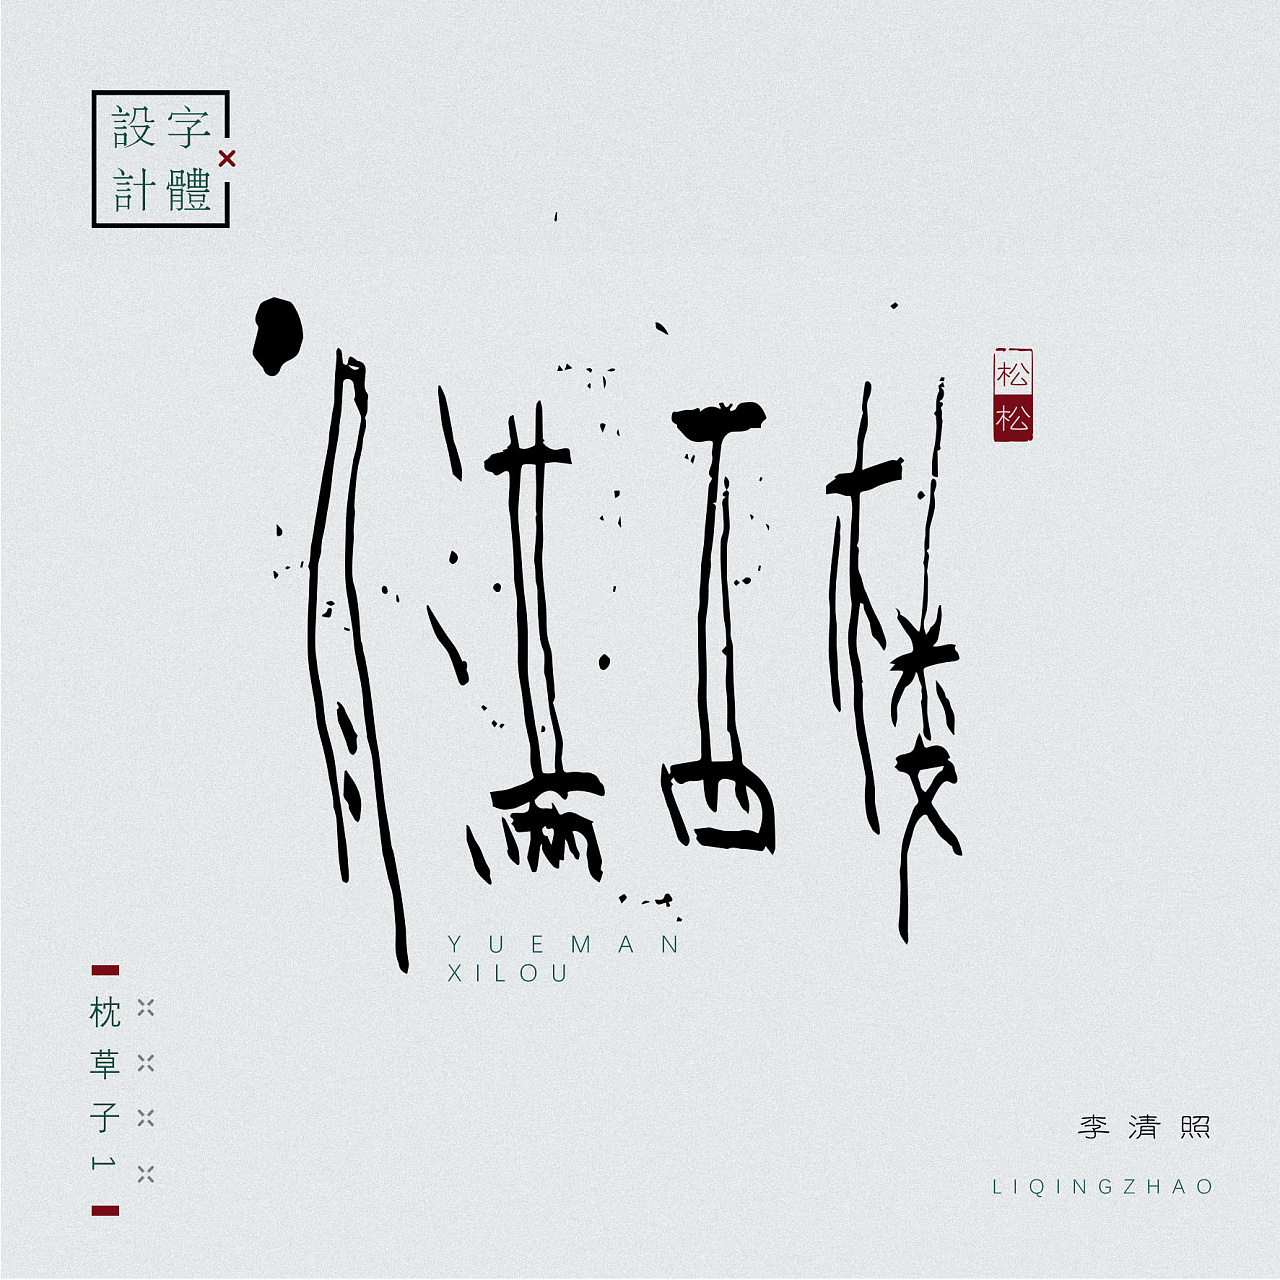 39P Creative abstract concept Chinese font design #.25